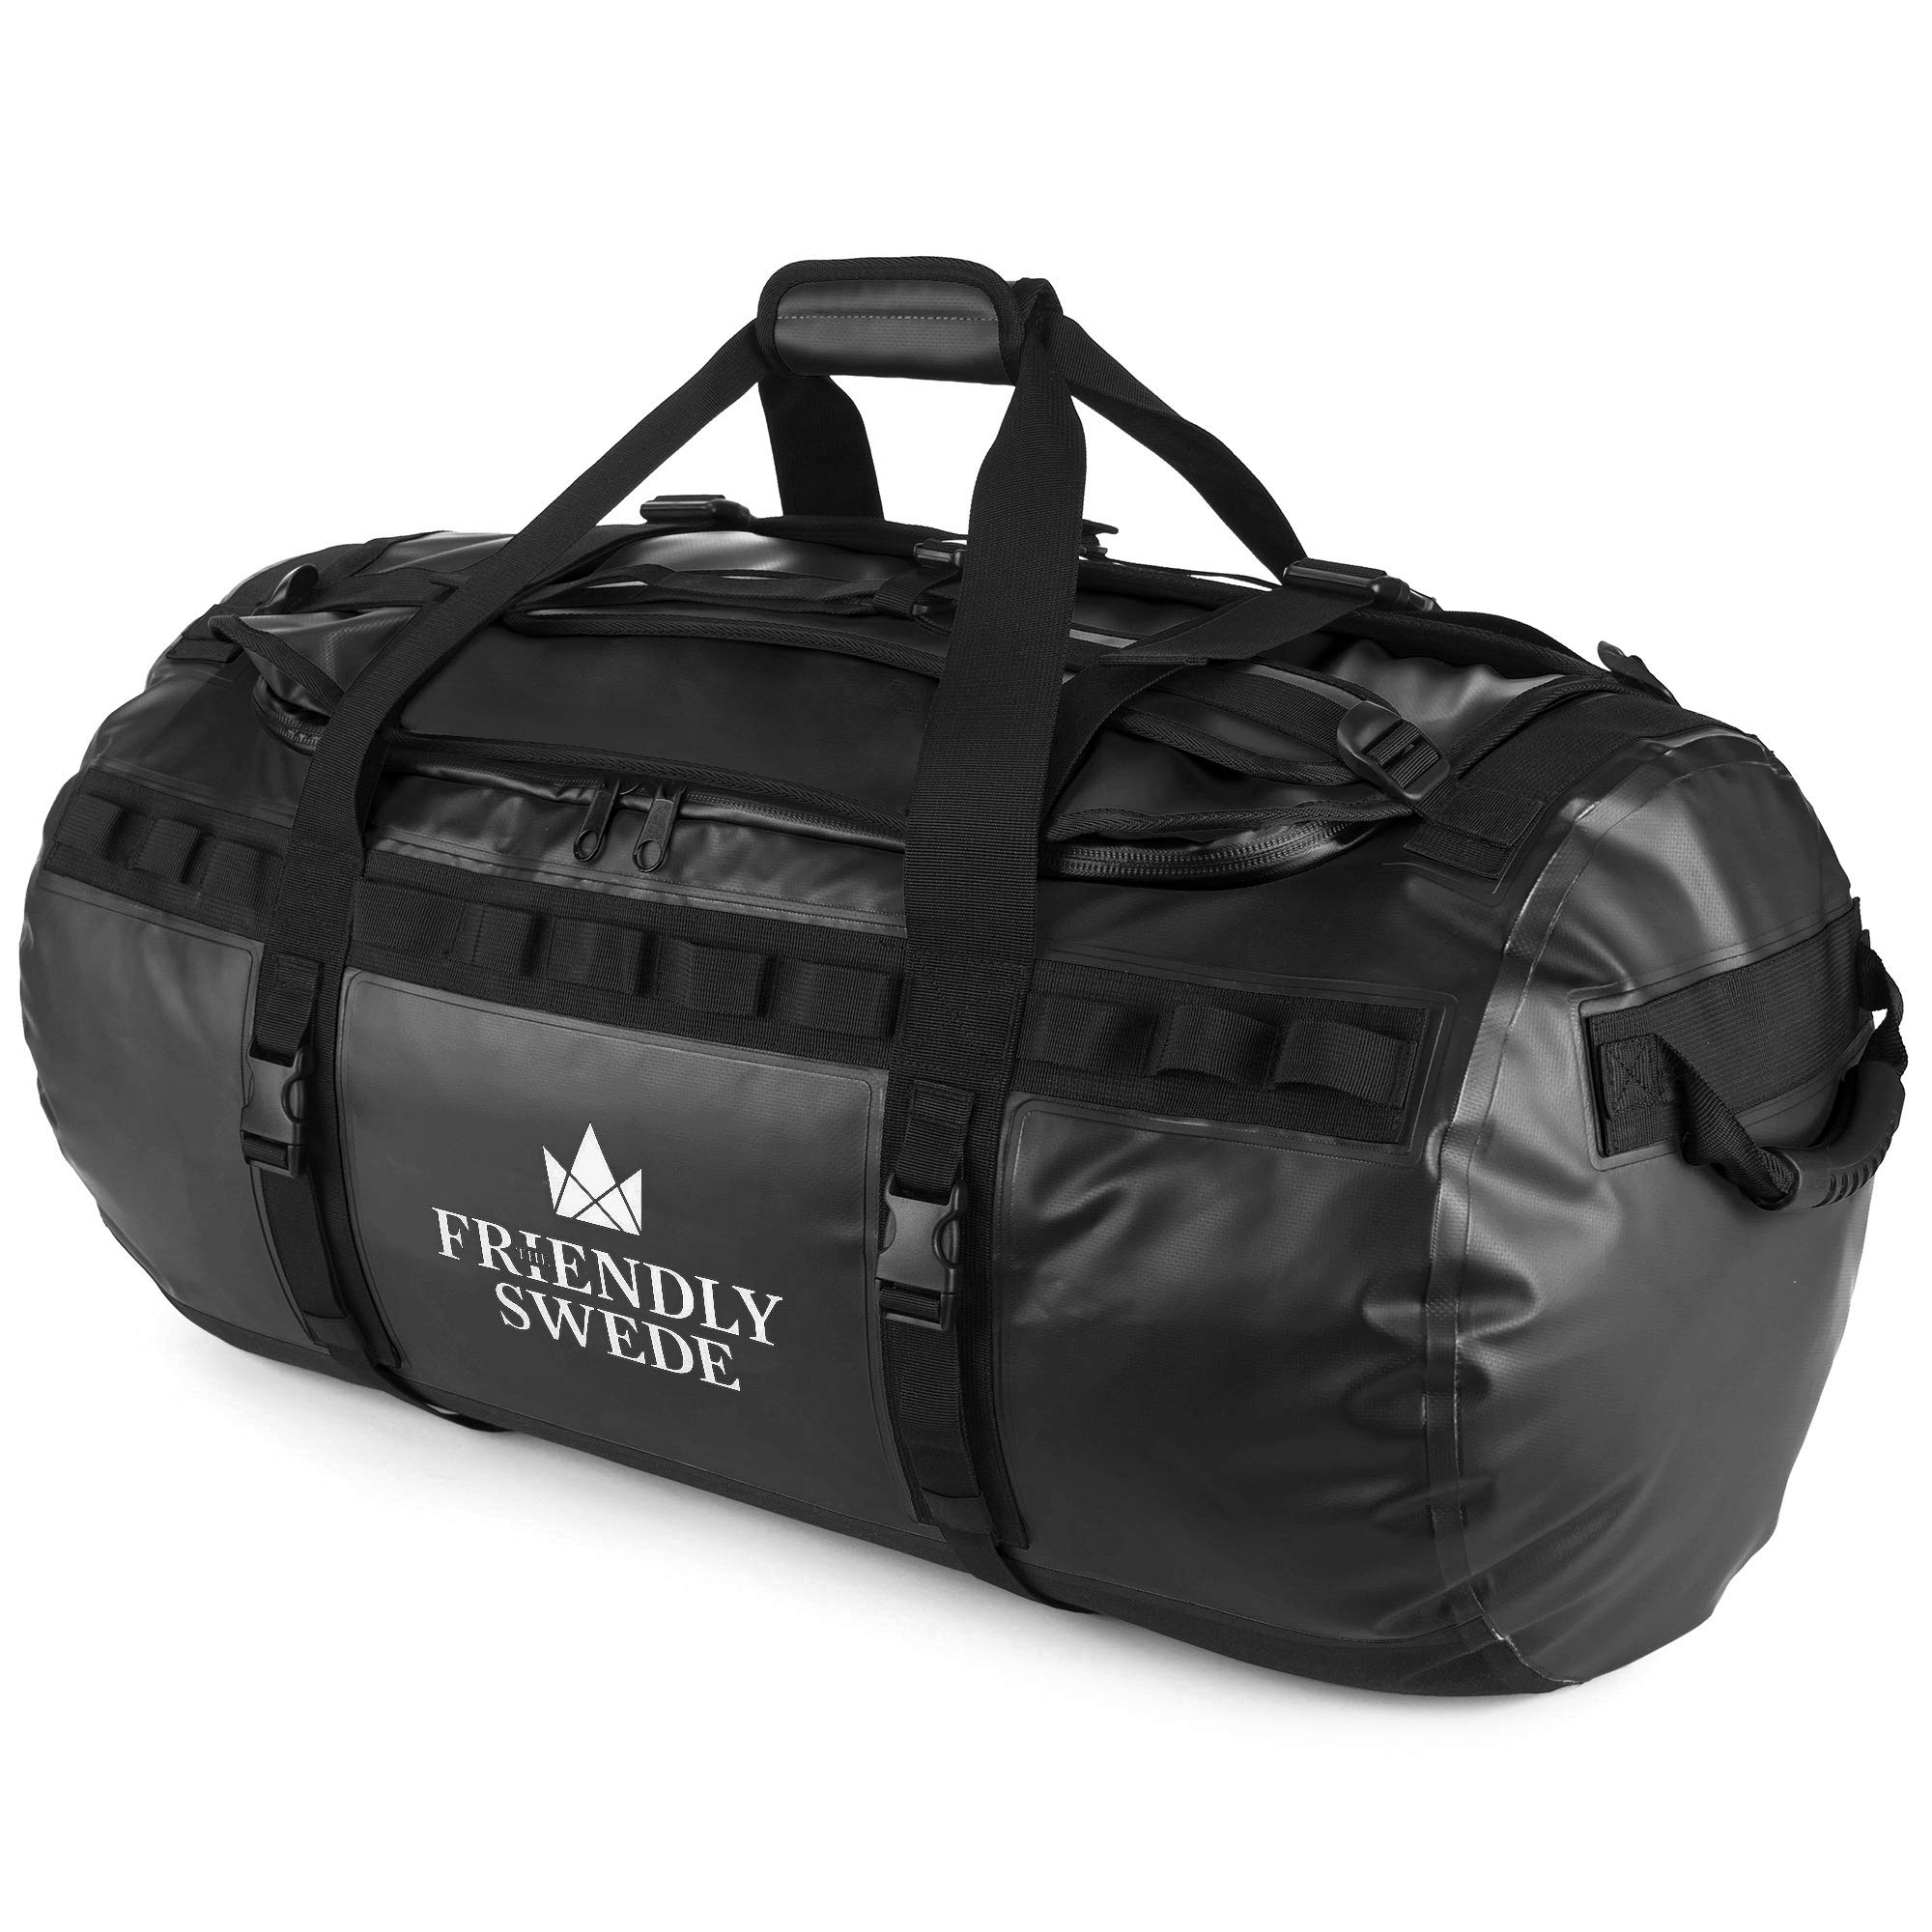 The Friendly Swede Duffel bag with Backpack Straps for Gym, Travel and Sports - SANDHAMN Duffle Waterproof Material by The Friendly Swede